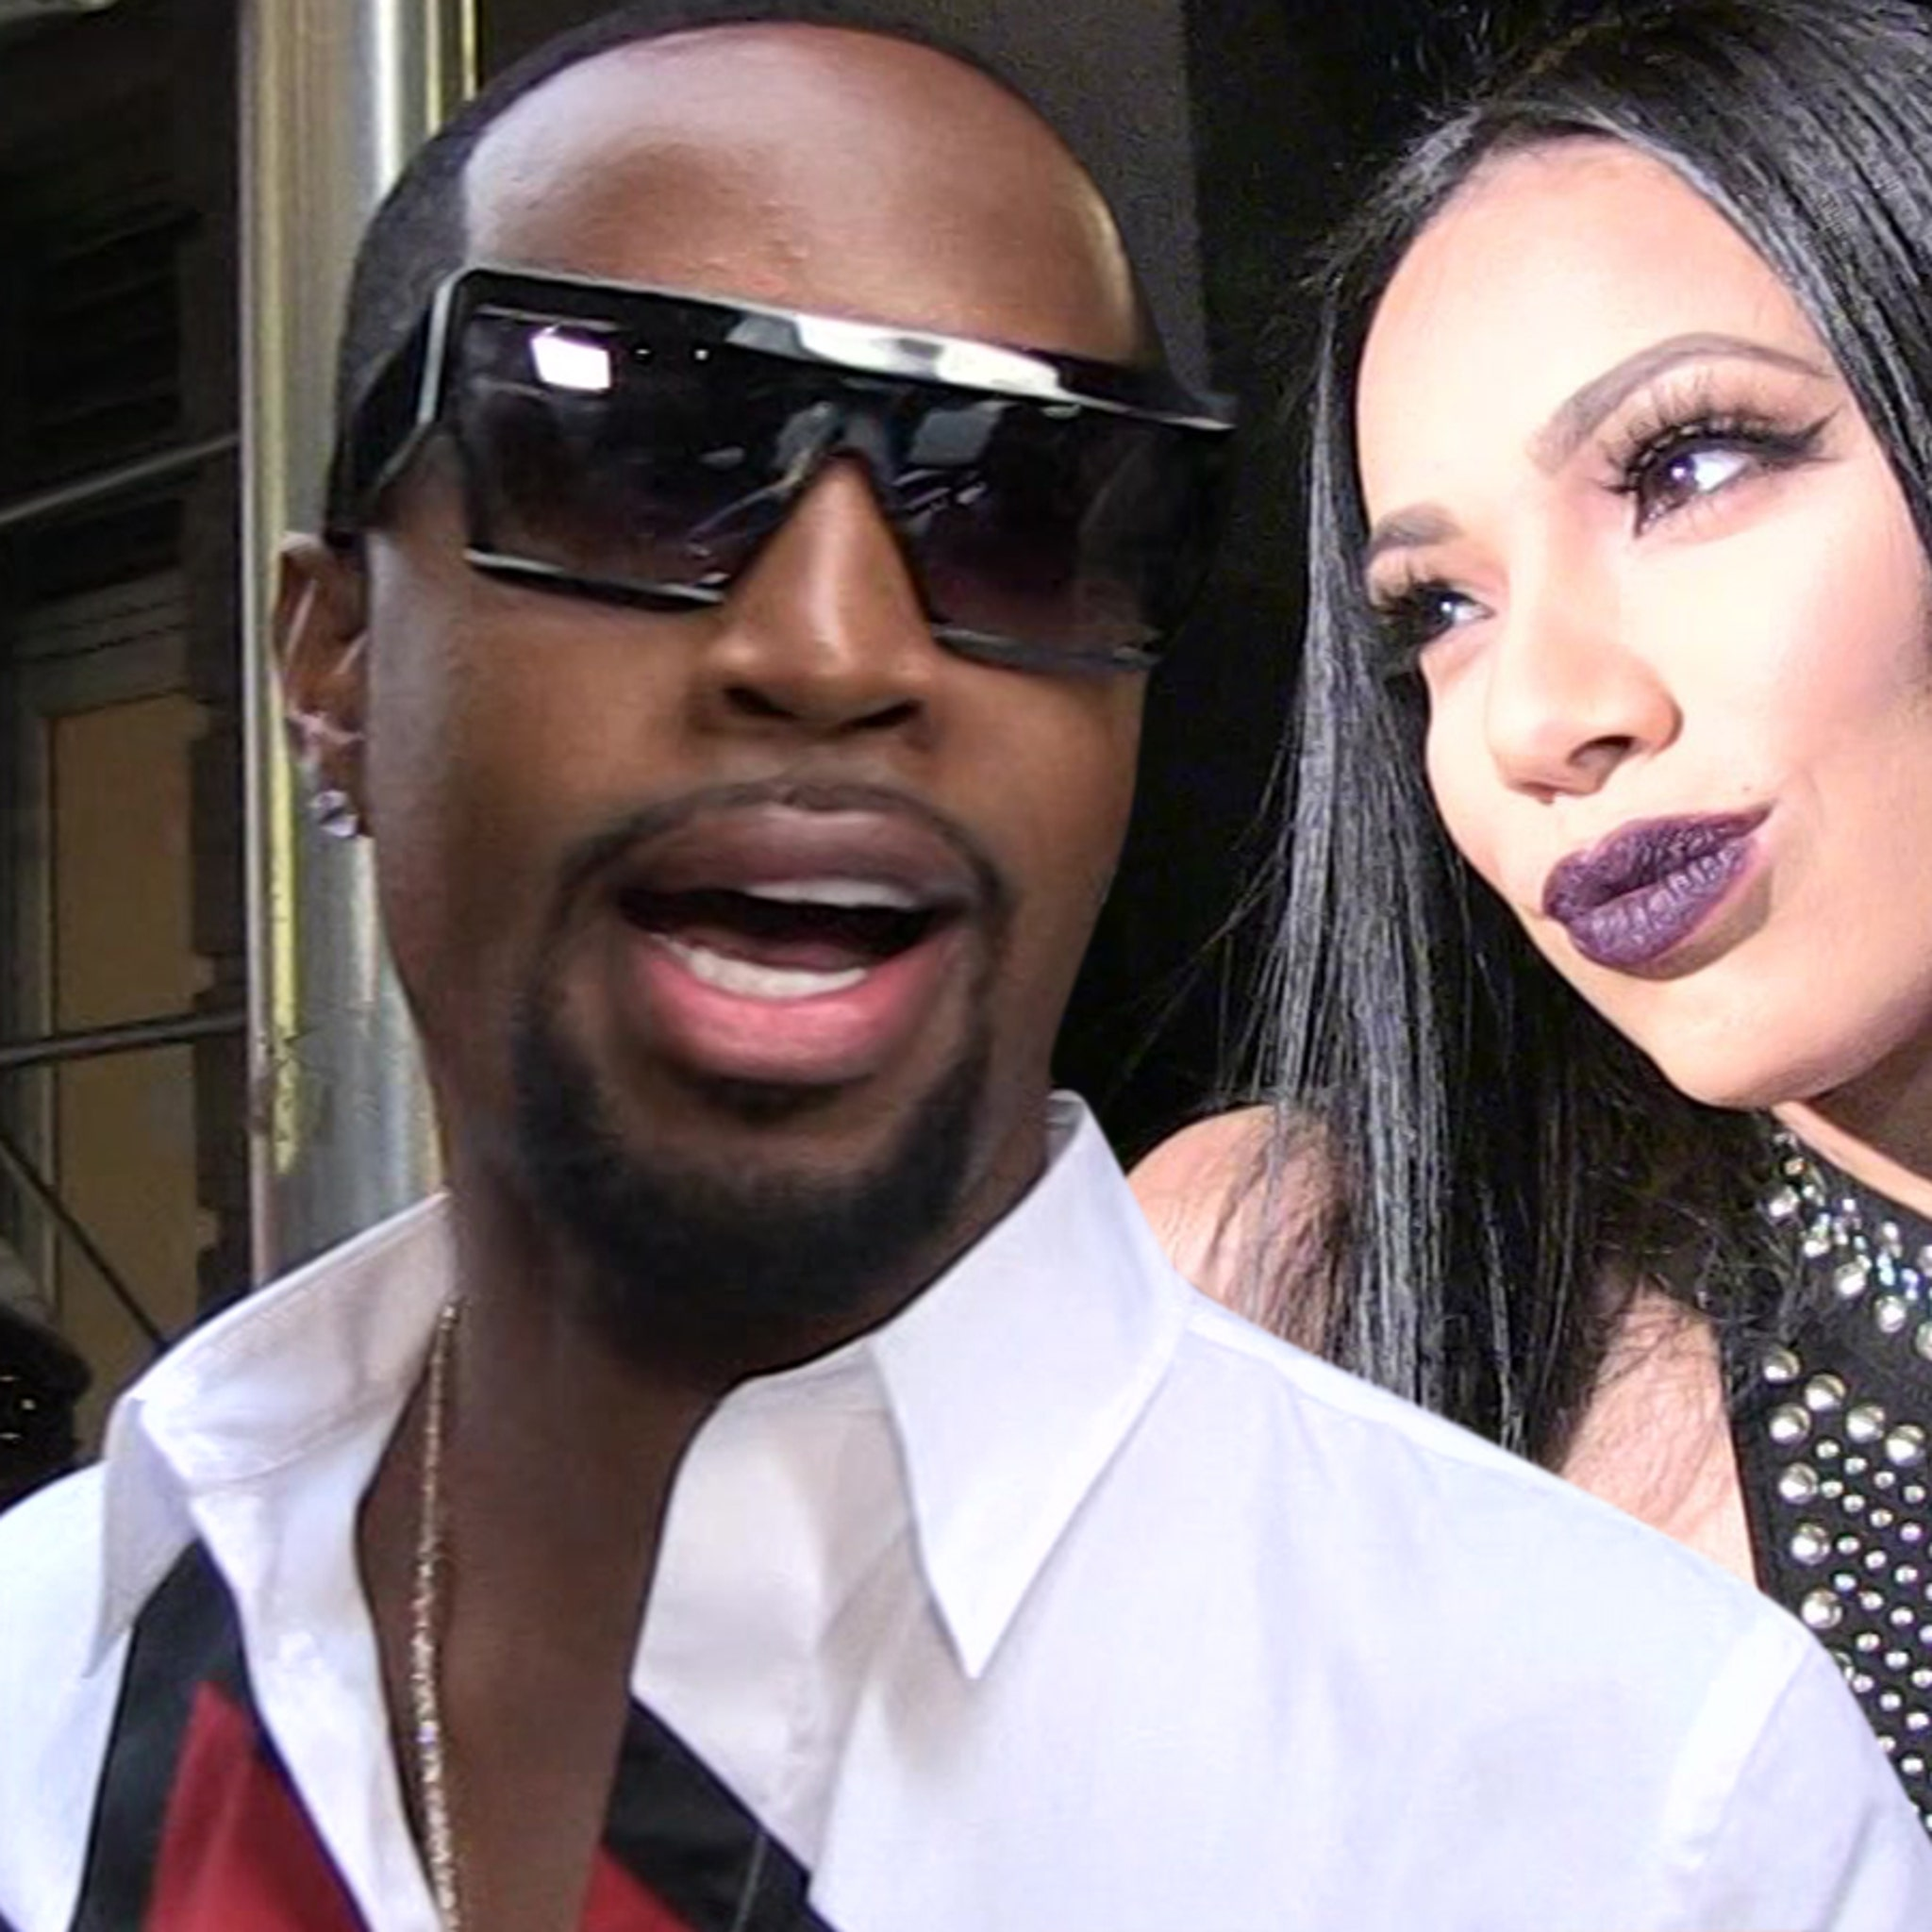 Erica Mena Buys Husband Safaree a Lavish 'Daddy' Push Gift